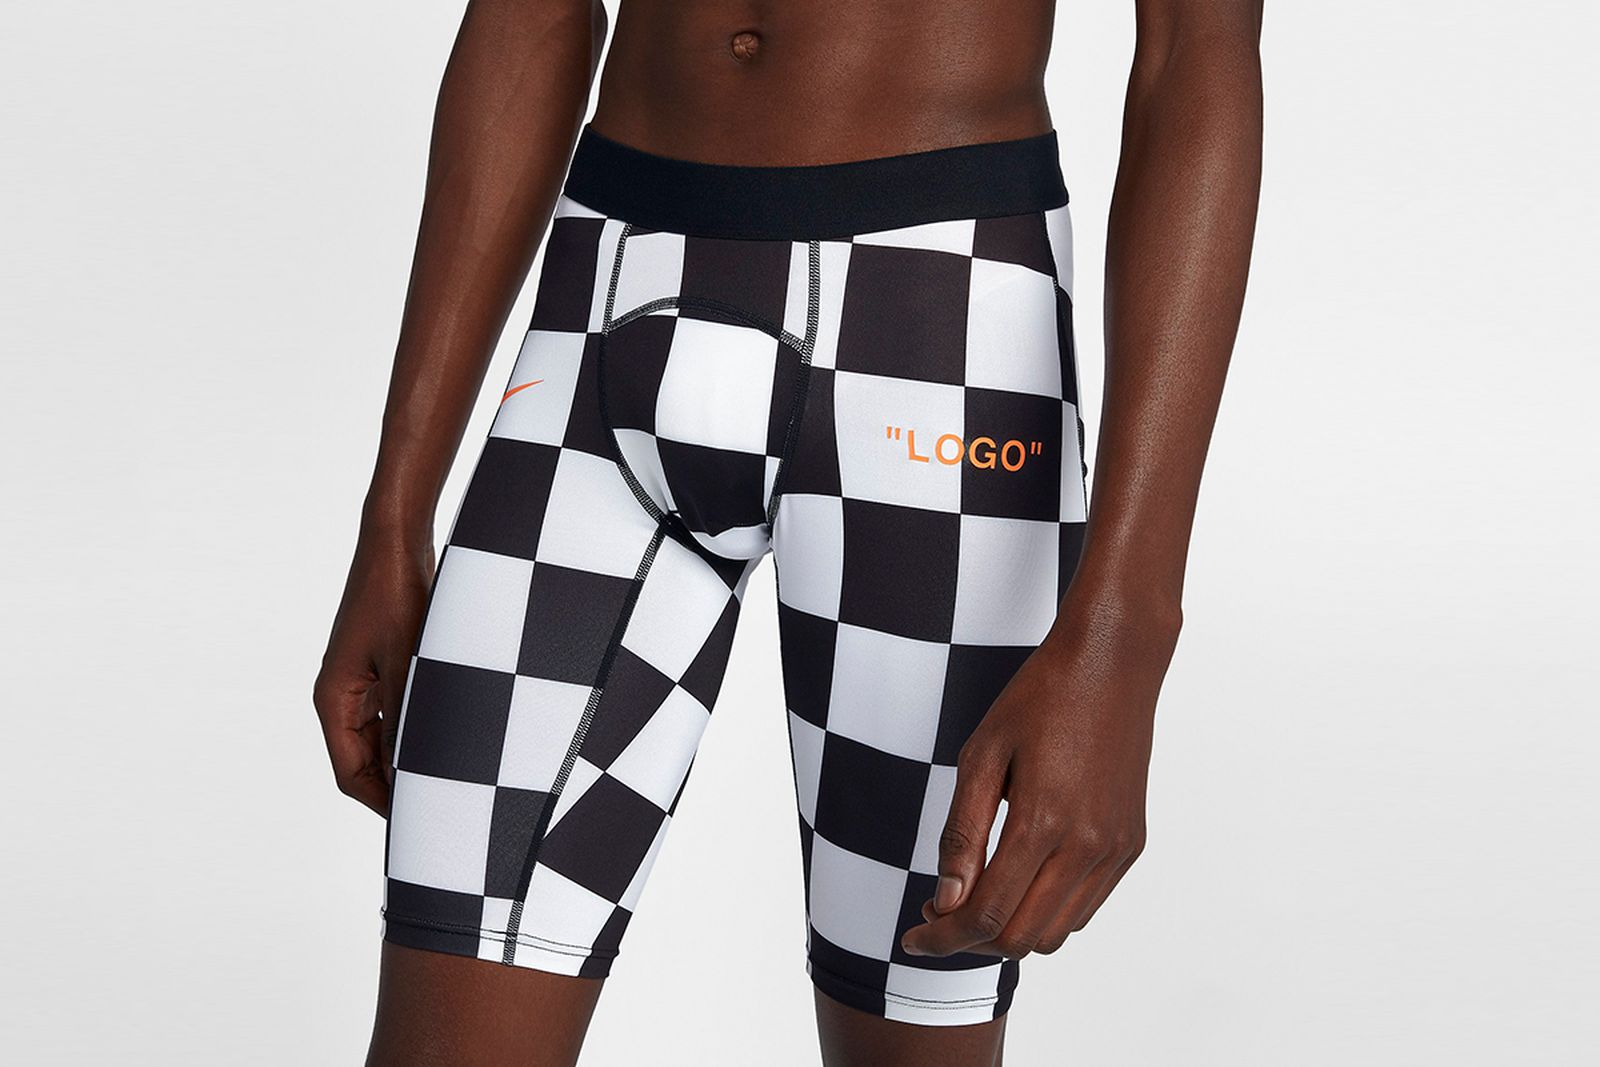 shorts away2 2018 FIFA World Cup Nike OFF-WHITE c/o Virgil Abloh